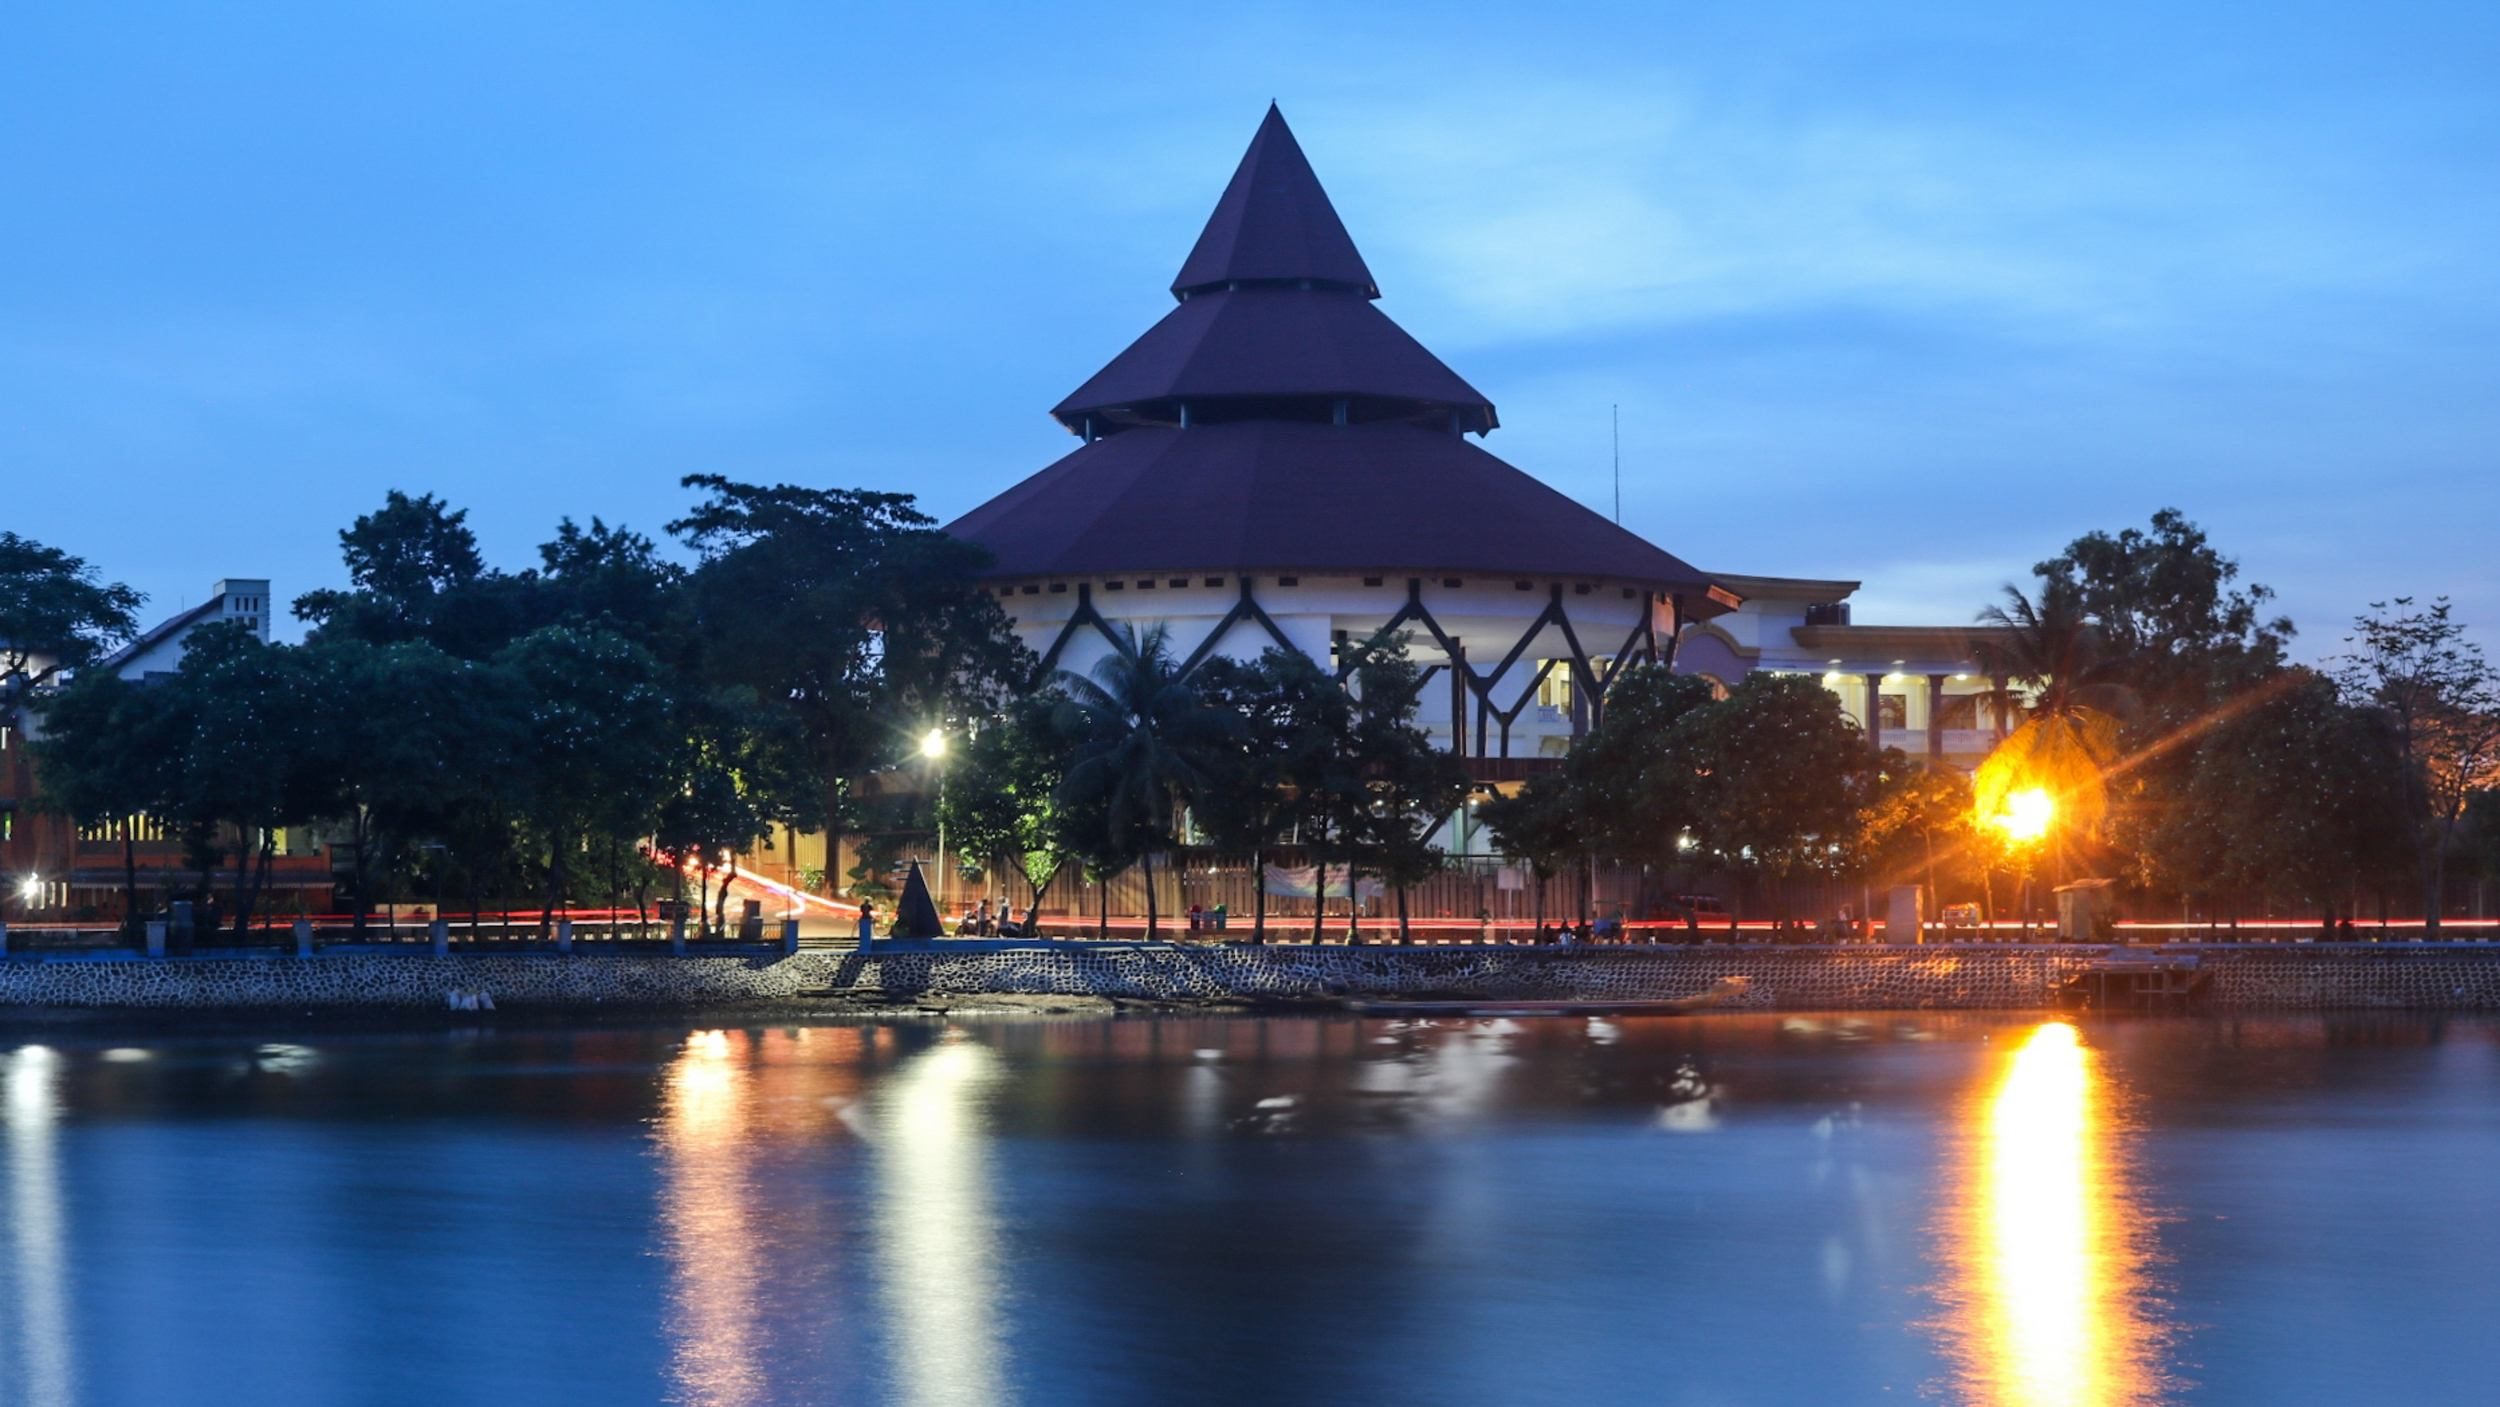 Babakan Lake and the Betawi Cultural Village